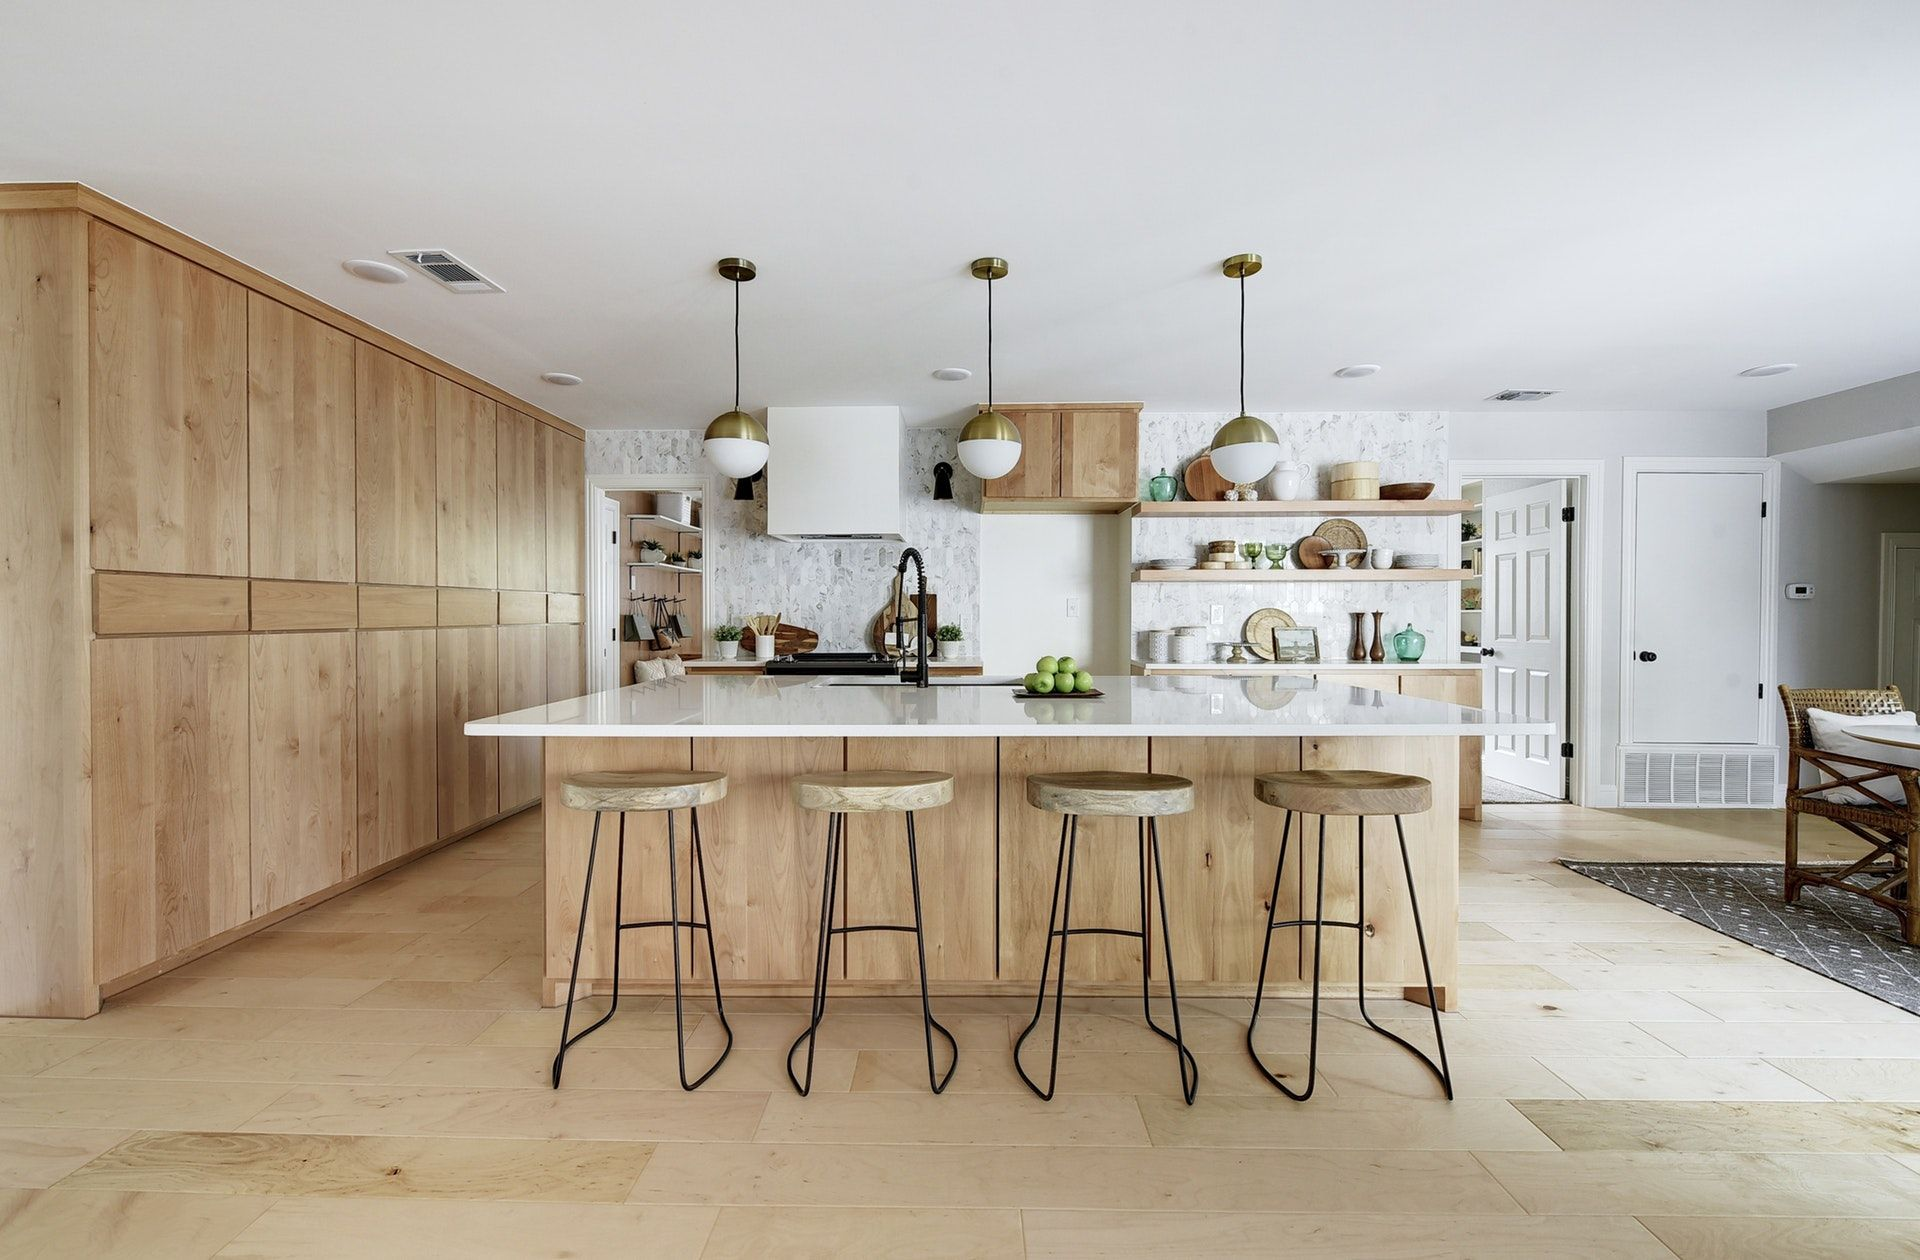 Open Kitchen With Flat Front Natural Alder Wood Cabinets Light Wood Floors Globe Pendants With White Glass And Brass Rustic Kitchen Kitchen Design Interior